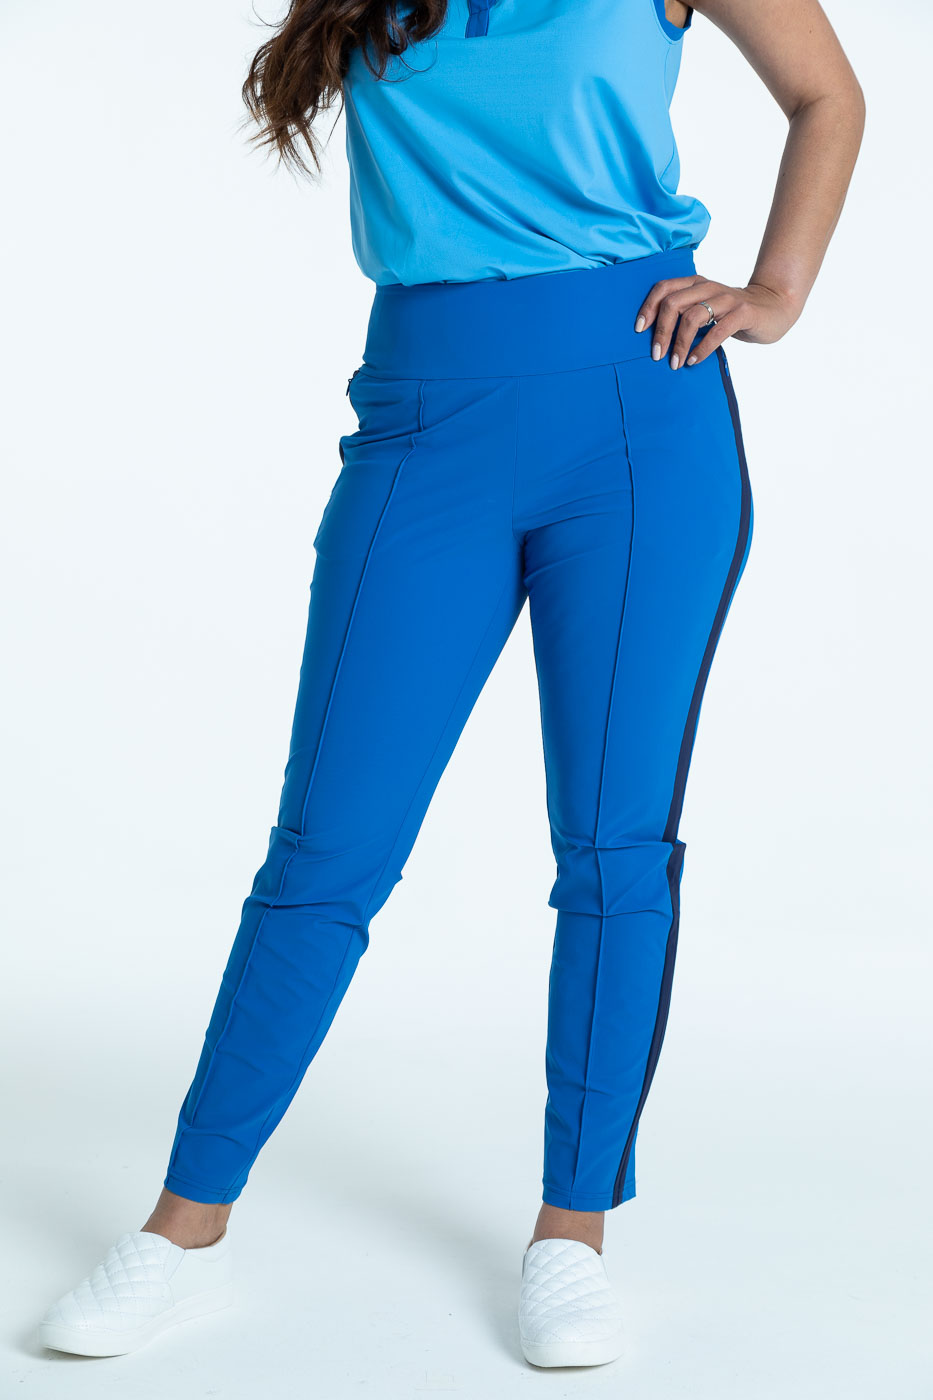 Woman golfer in  blueberry blue Tailored Track golf pants with a cornflower blue Free and Easy sleeveless golf top